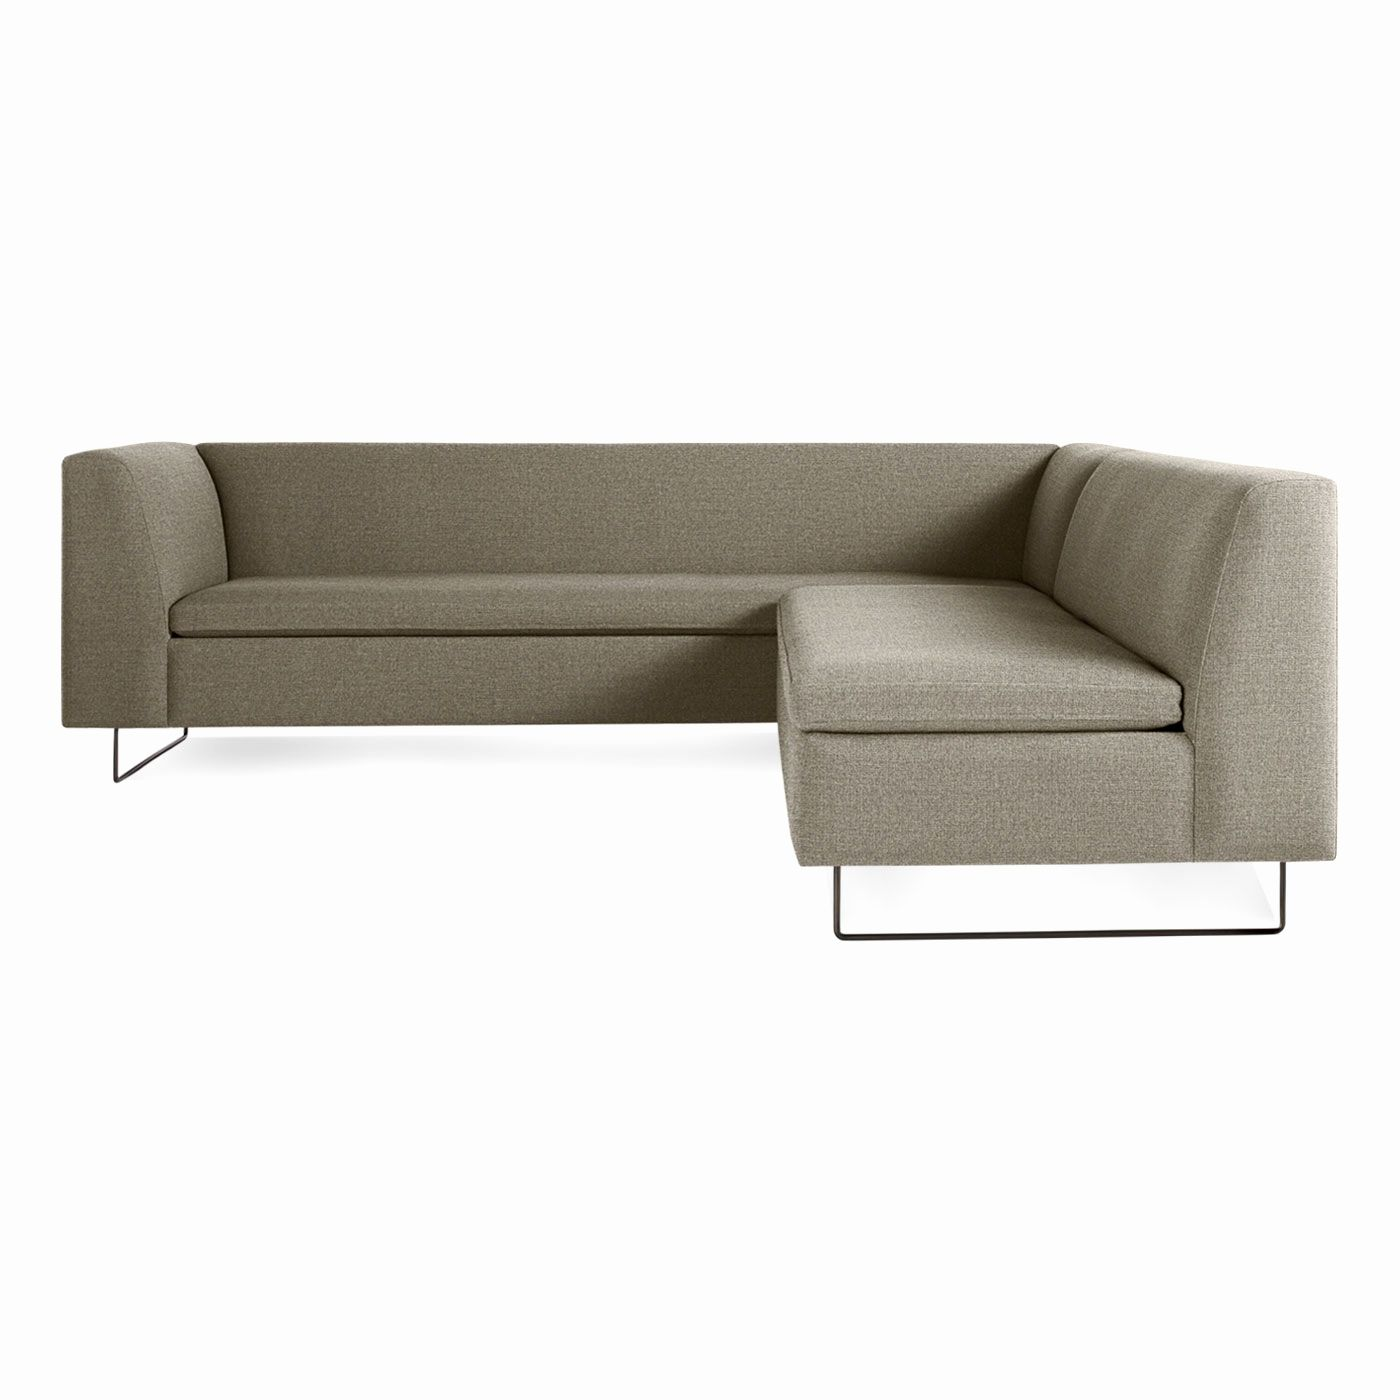 Ideas Sectional Modern sofa Pictures Sectional Modern